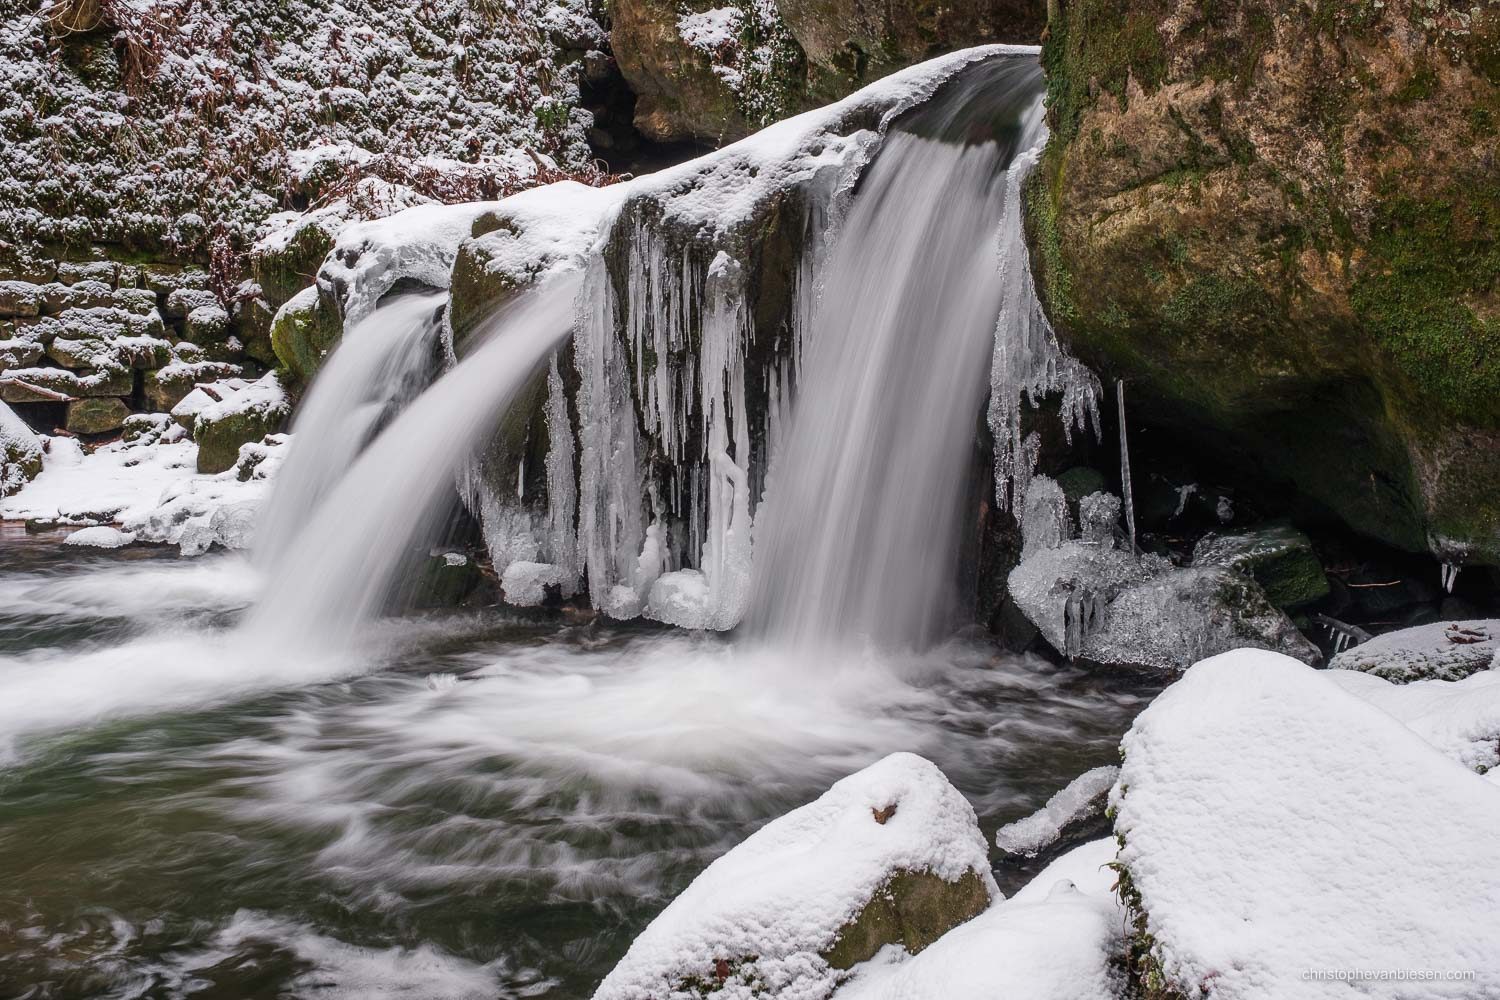 Visit the Mullerthal - Luxembourg - A cold winter has frozen parts of the Mullerthal's Schiessentumpel waterfall in northeastern Luxembourg - Frozen Waters